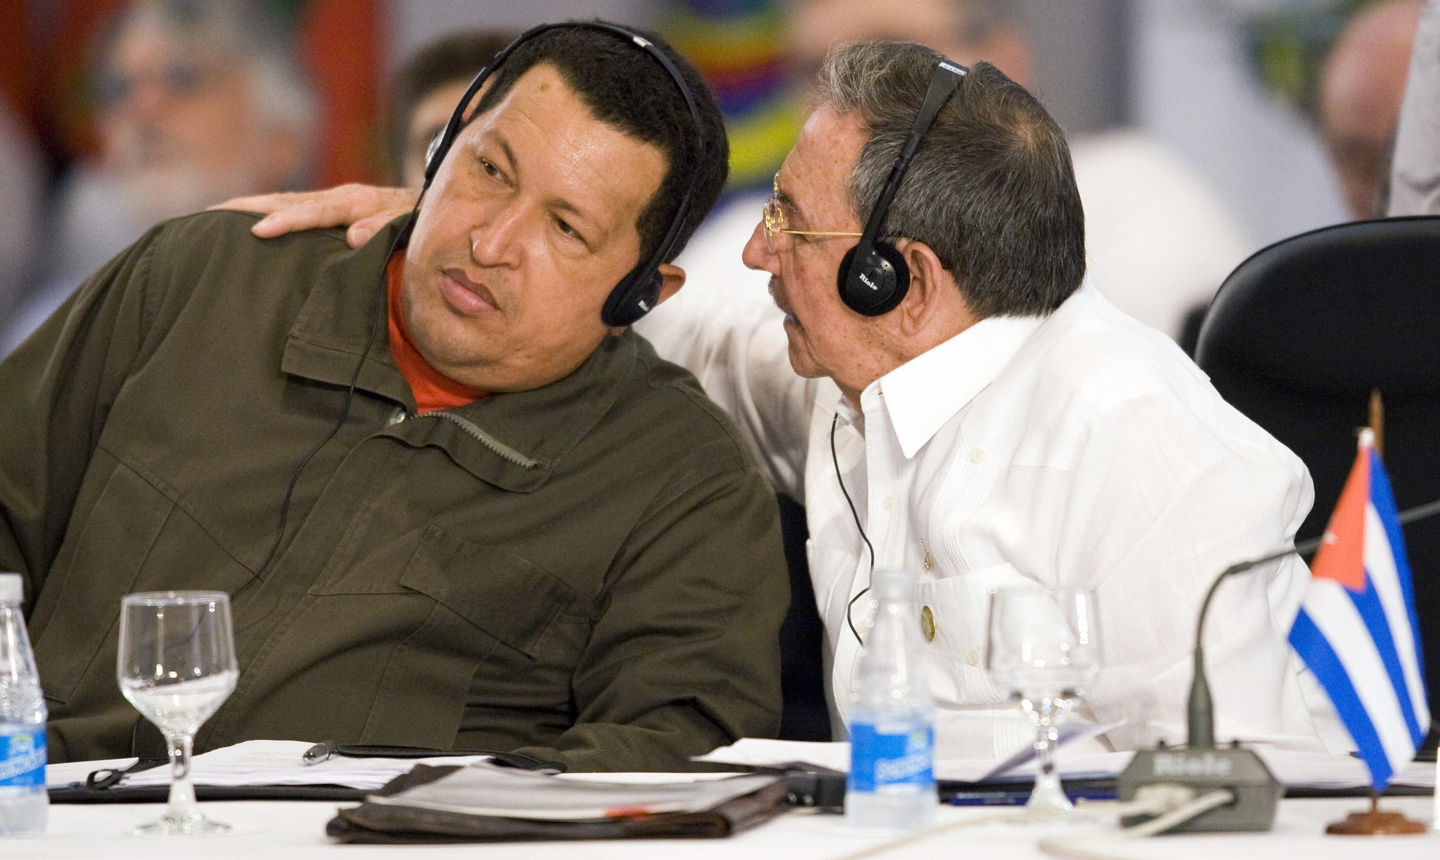 Cuba's President Raul Castro (R) whispers in Venezuela's President Hugo Chavez's ear during the South America and the Caribbean Summit in Sauipe, Brazil, on December 16, 2008. Latin American presidents gathered in northeastern Brazil for a summit dominated by concern over the accelerating global economic crisis. The two-day meeting of leaders of 33 Latin American and Caribbean nations -- including, for the first time, Cuban President Raul Castro -- comes as the region's governments grapple with slumping currencies, plummeting trade, shaved growth and climbing debt.  AFP PHOTO/Antonio Scorza (Photo credit should read ANTONIO SCORZA/AFP/Getty Images)